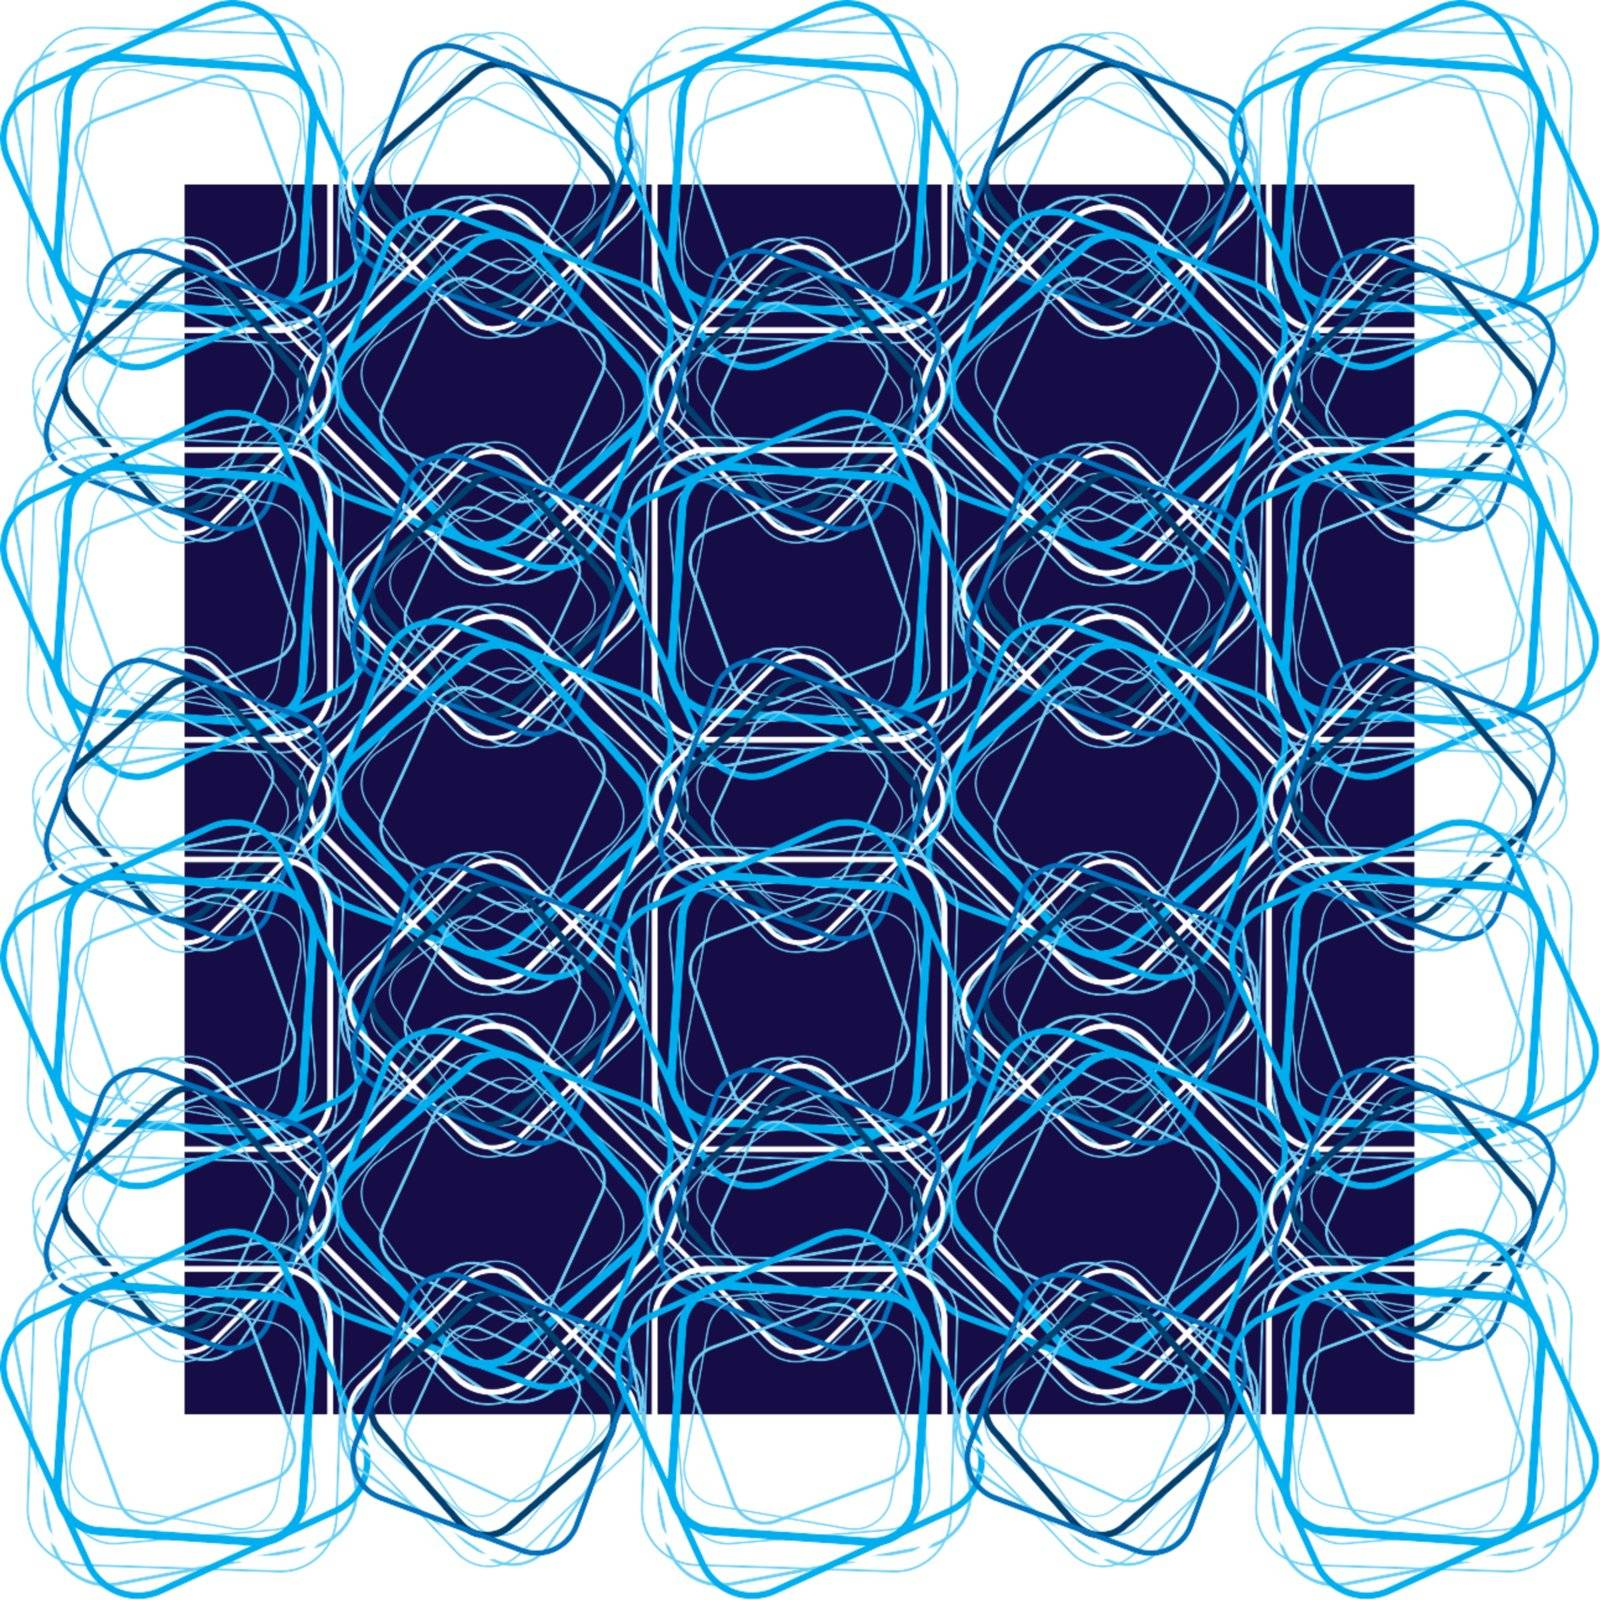 Electric illustrated blue square with a seamless repeat design